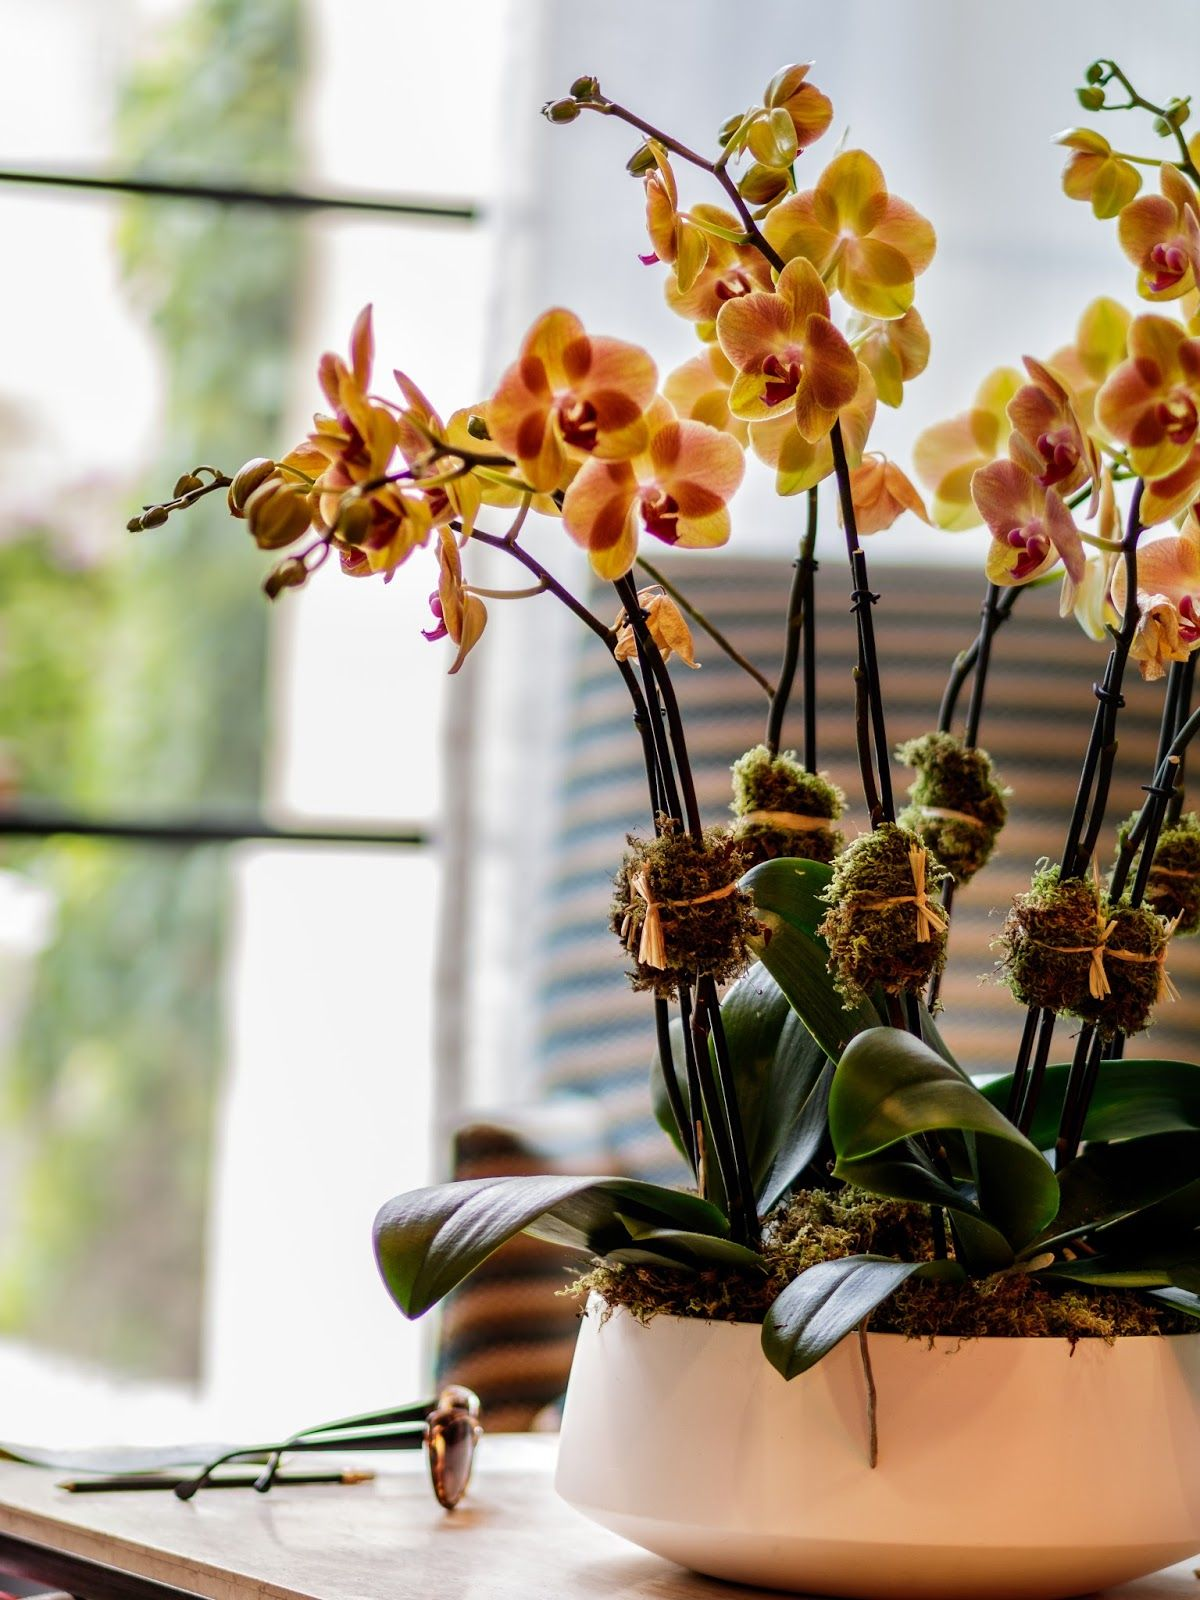 Introducing Ginny's Orchids Orchids, Orchid care, Flowers